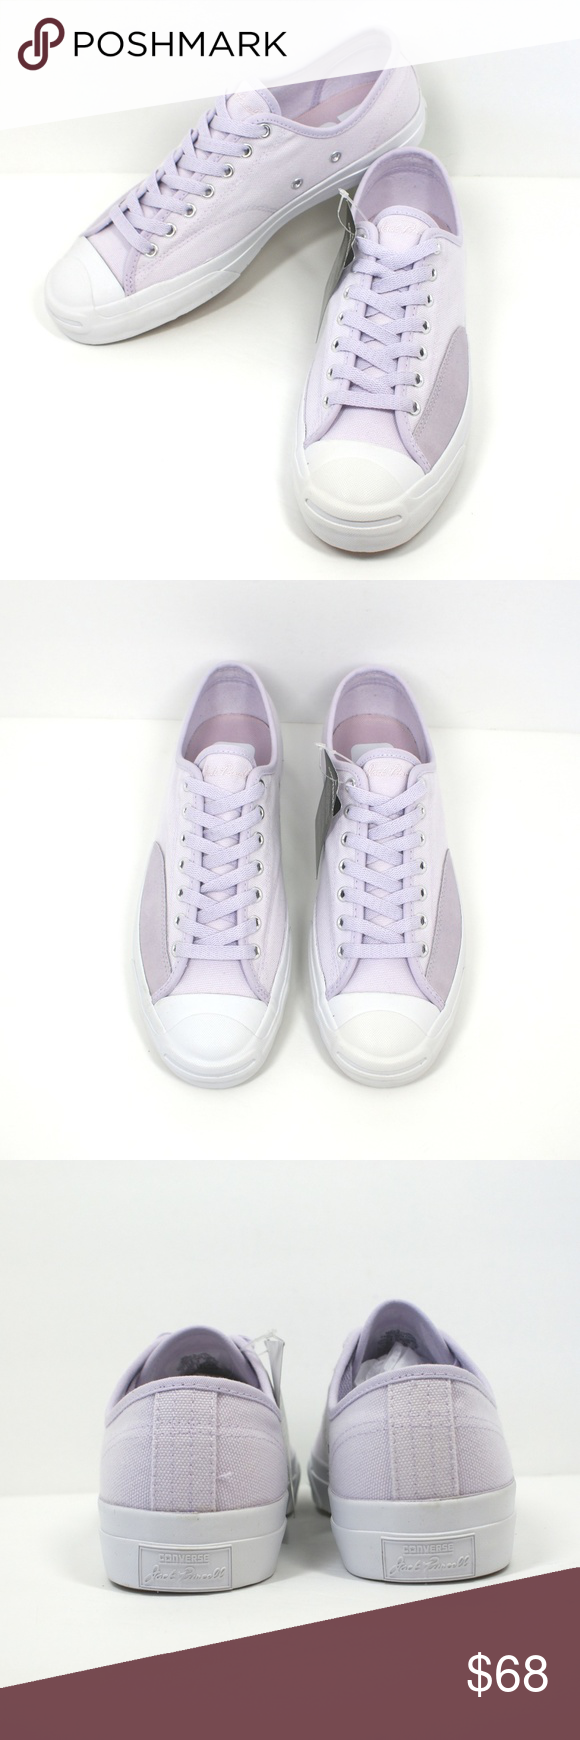 c6d03b506412 Converse Jack Purcell Pro Canvas - Barely Grape 100% Authentic - New -  Without Box